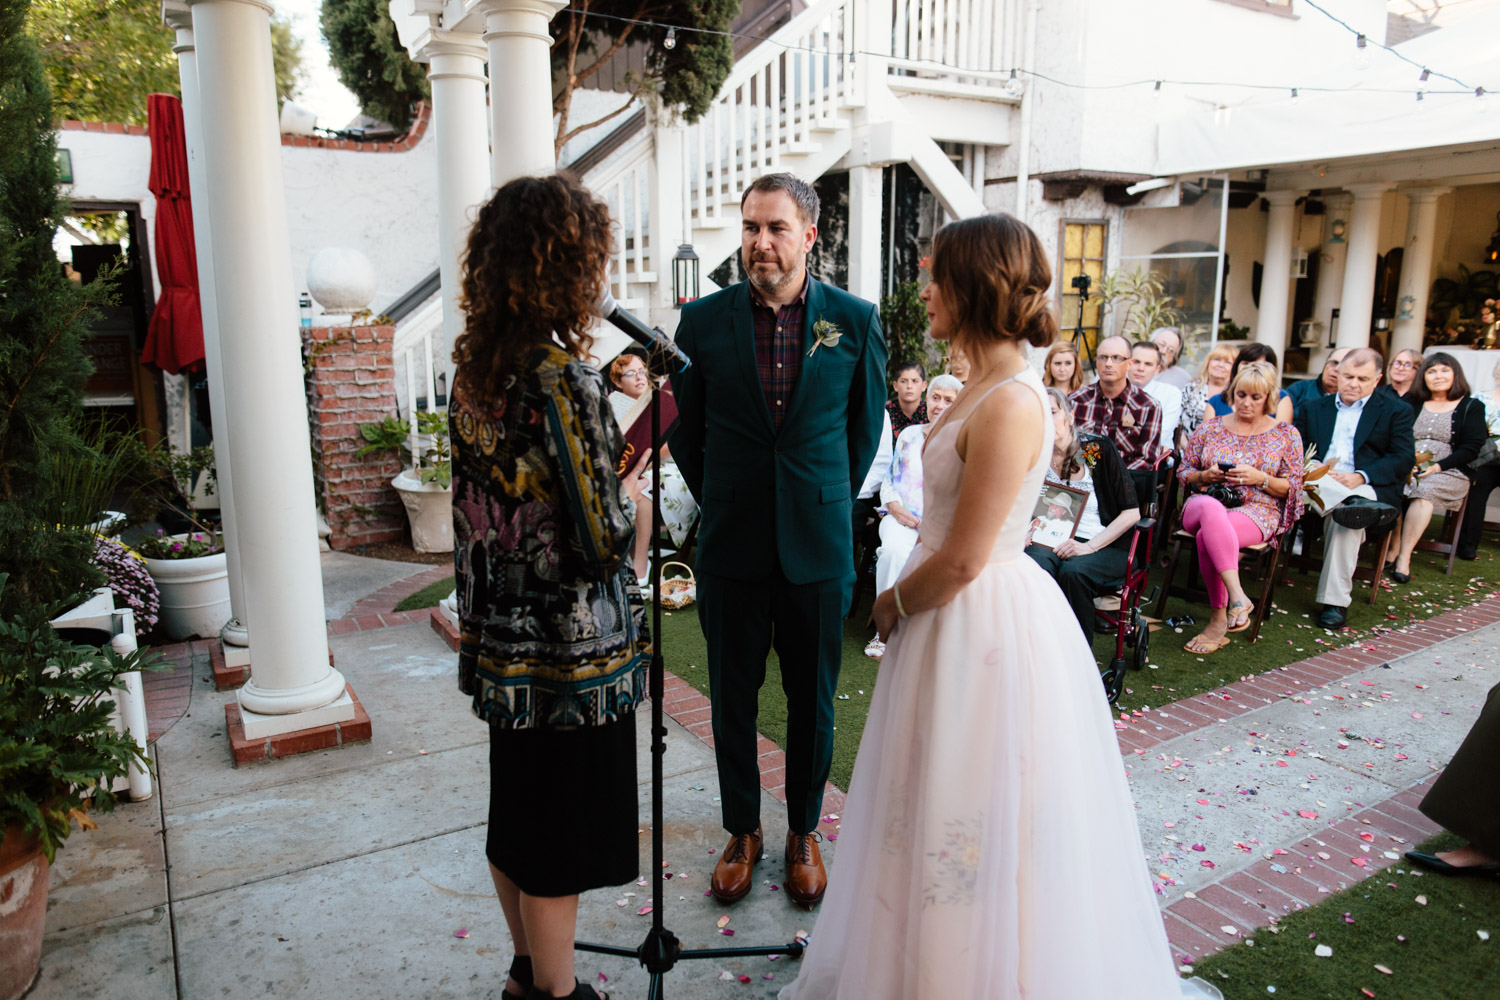 Riverside County Wedding Photographer, Five Crowns - The Gathering Season x weareleoandkat 035.JPG